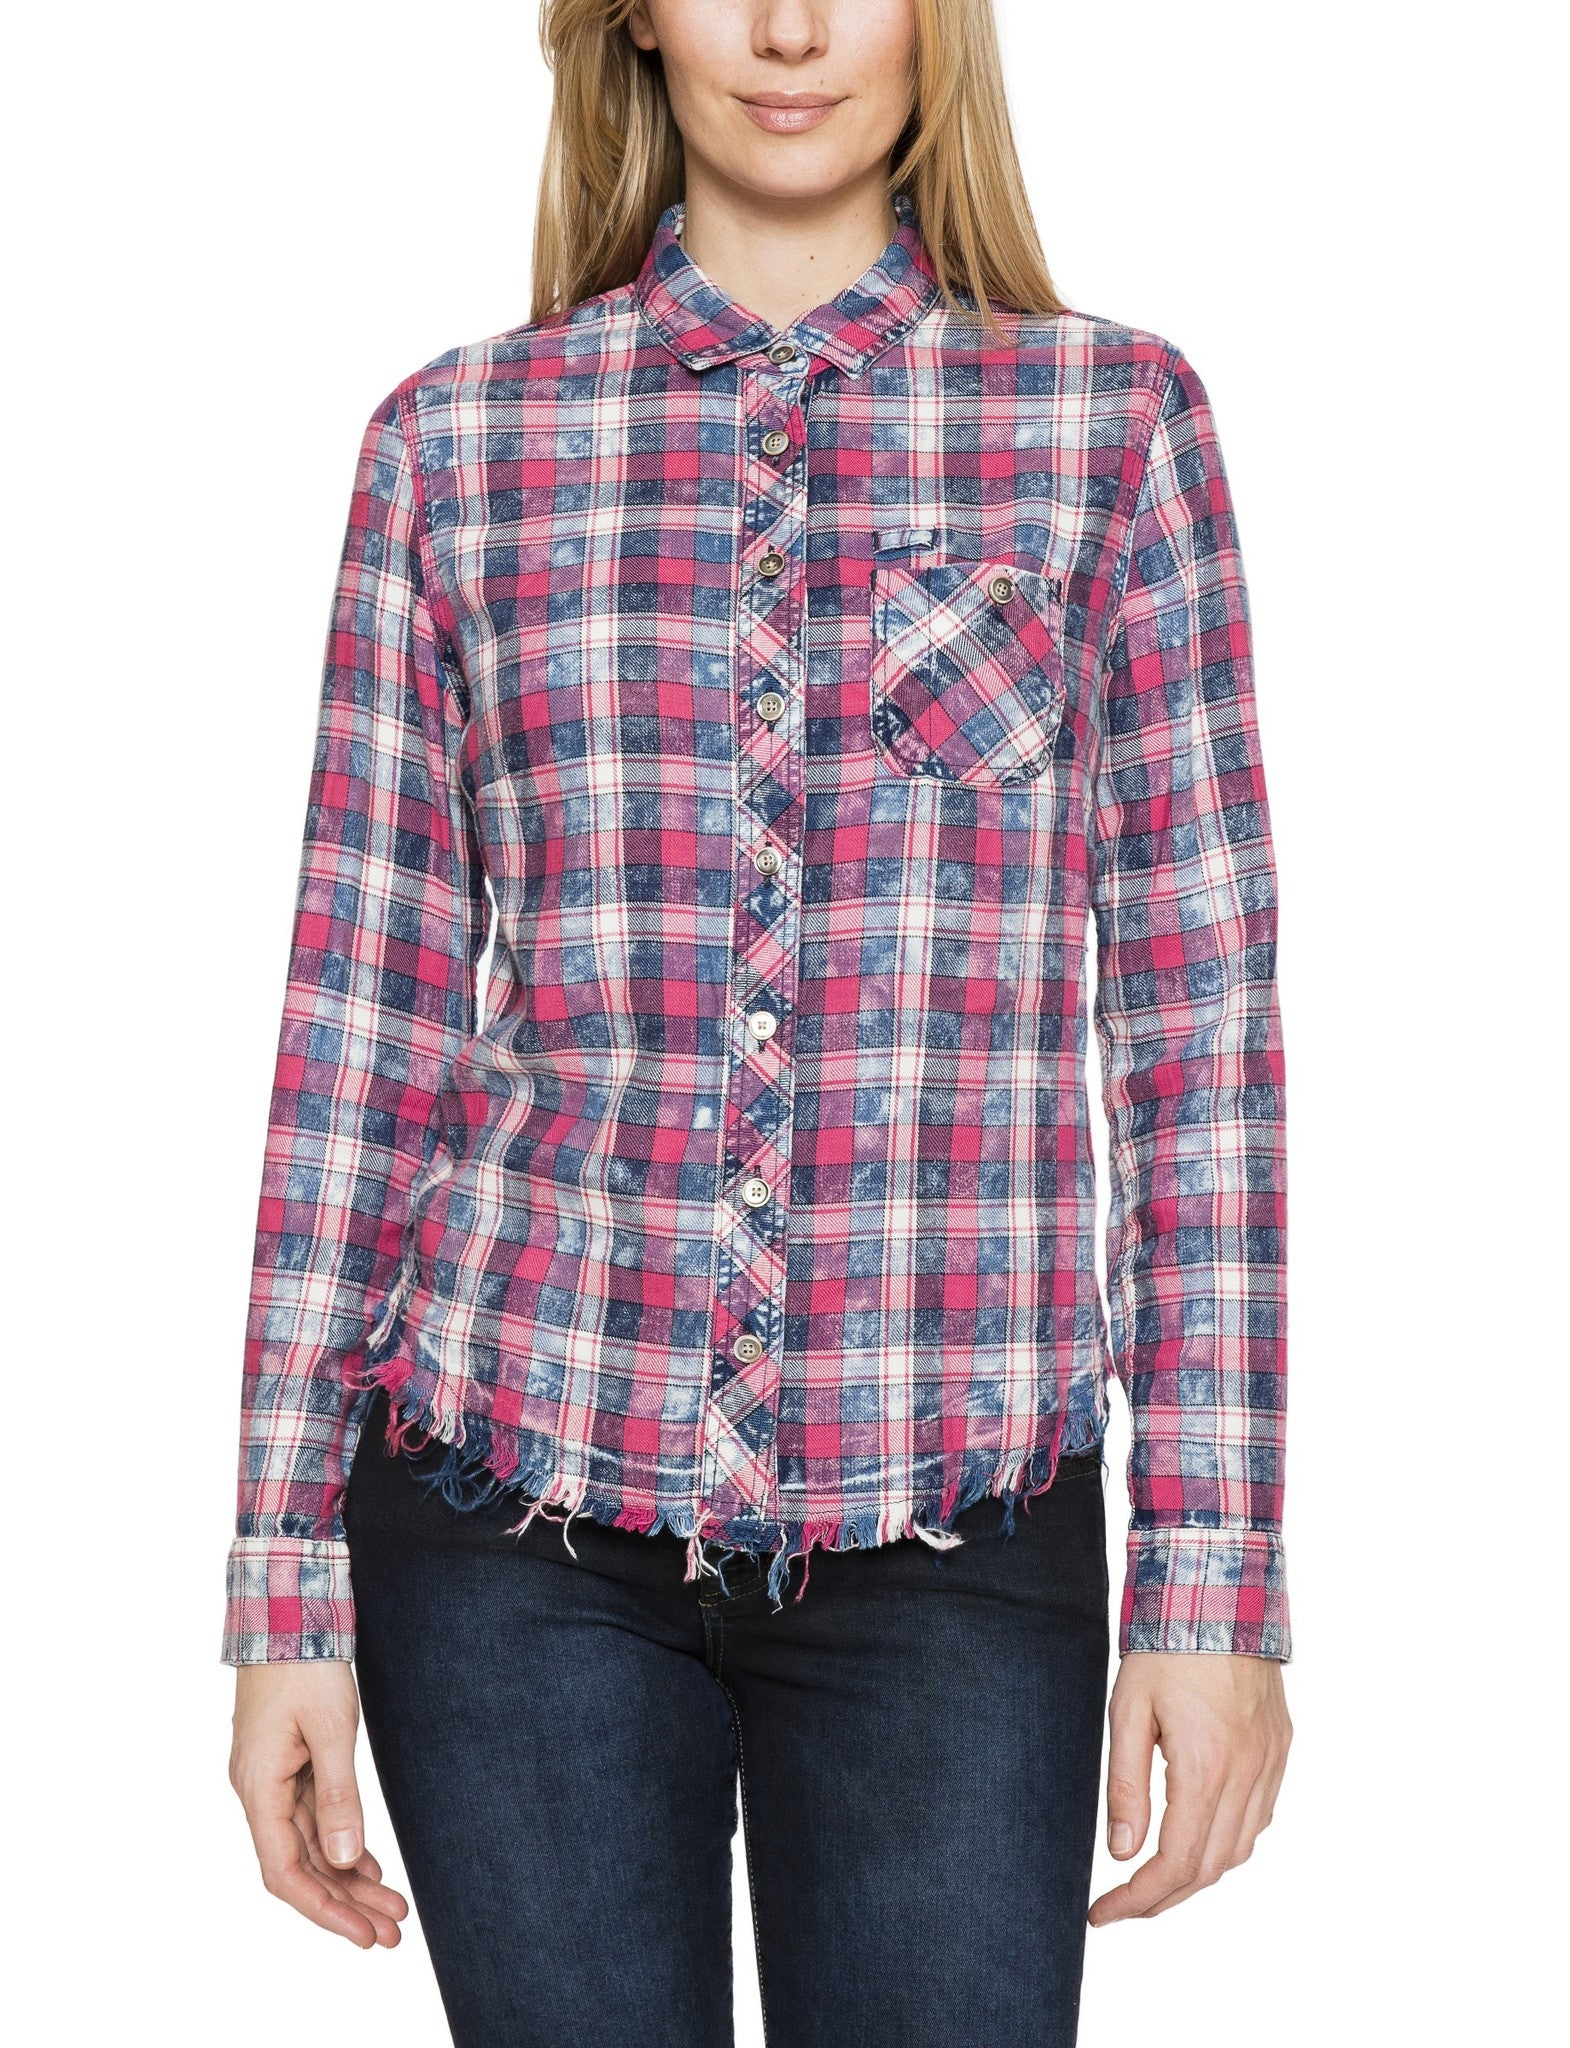 Fitted Plaid Shirt - Prps Women Fitted Plaid Shirt